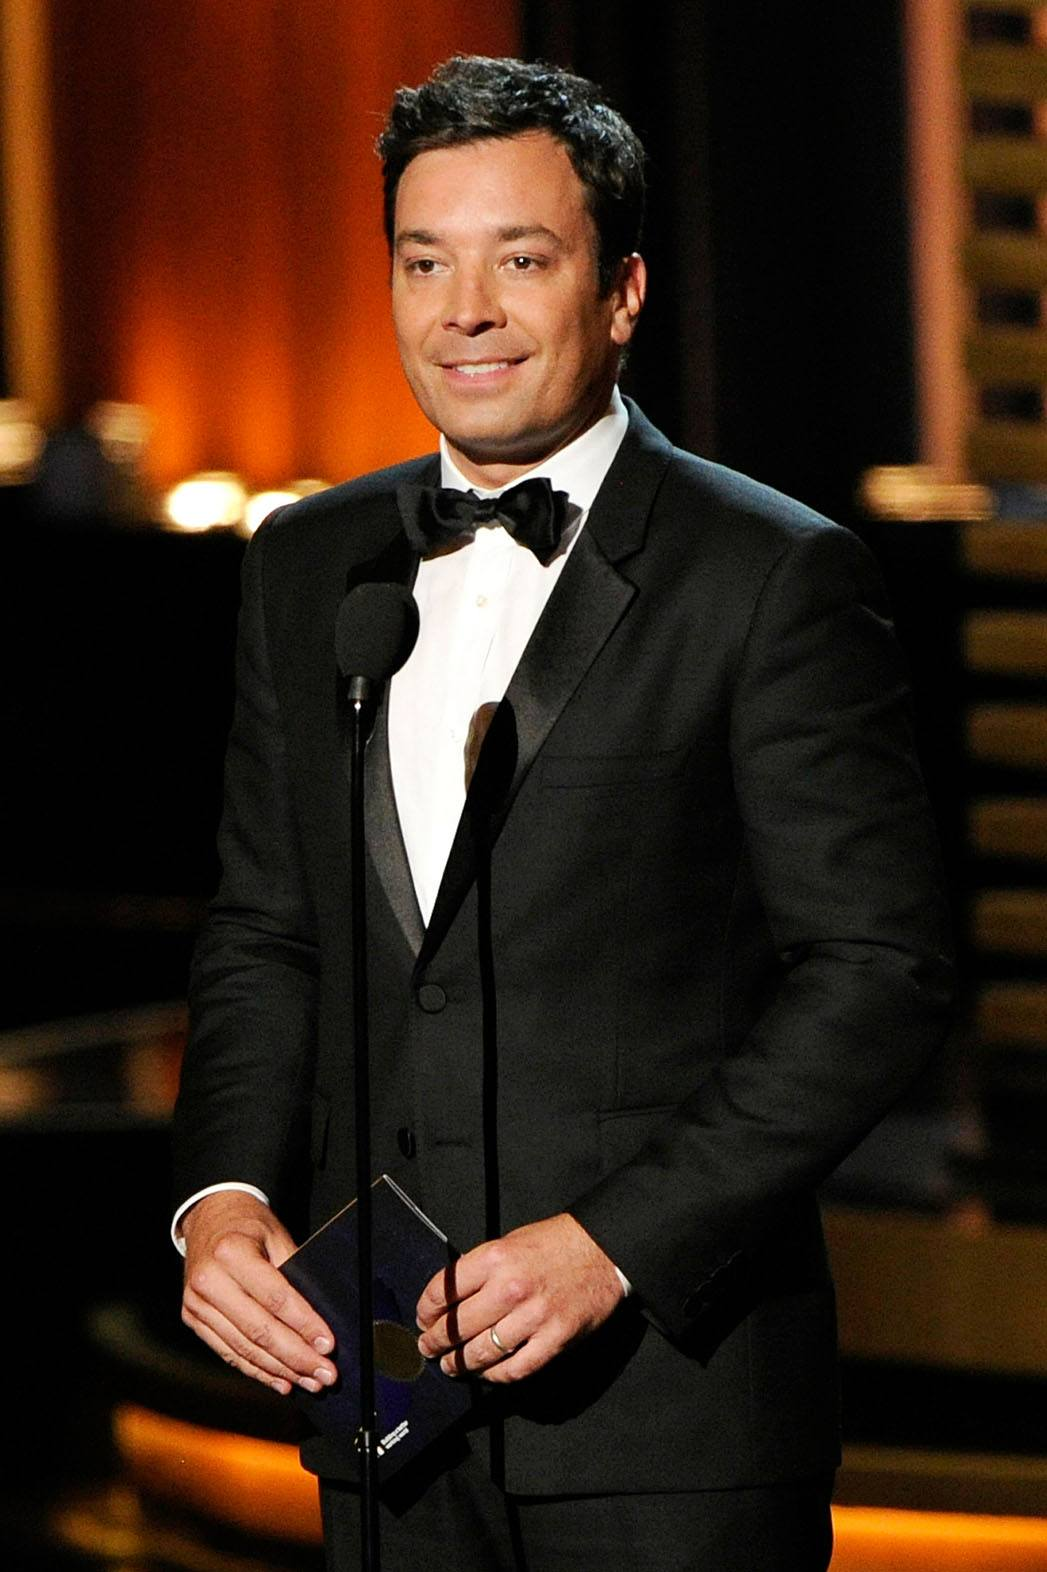 jimmy fallon a p 21 Things You Didn't Know About Jimmy Fallon